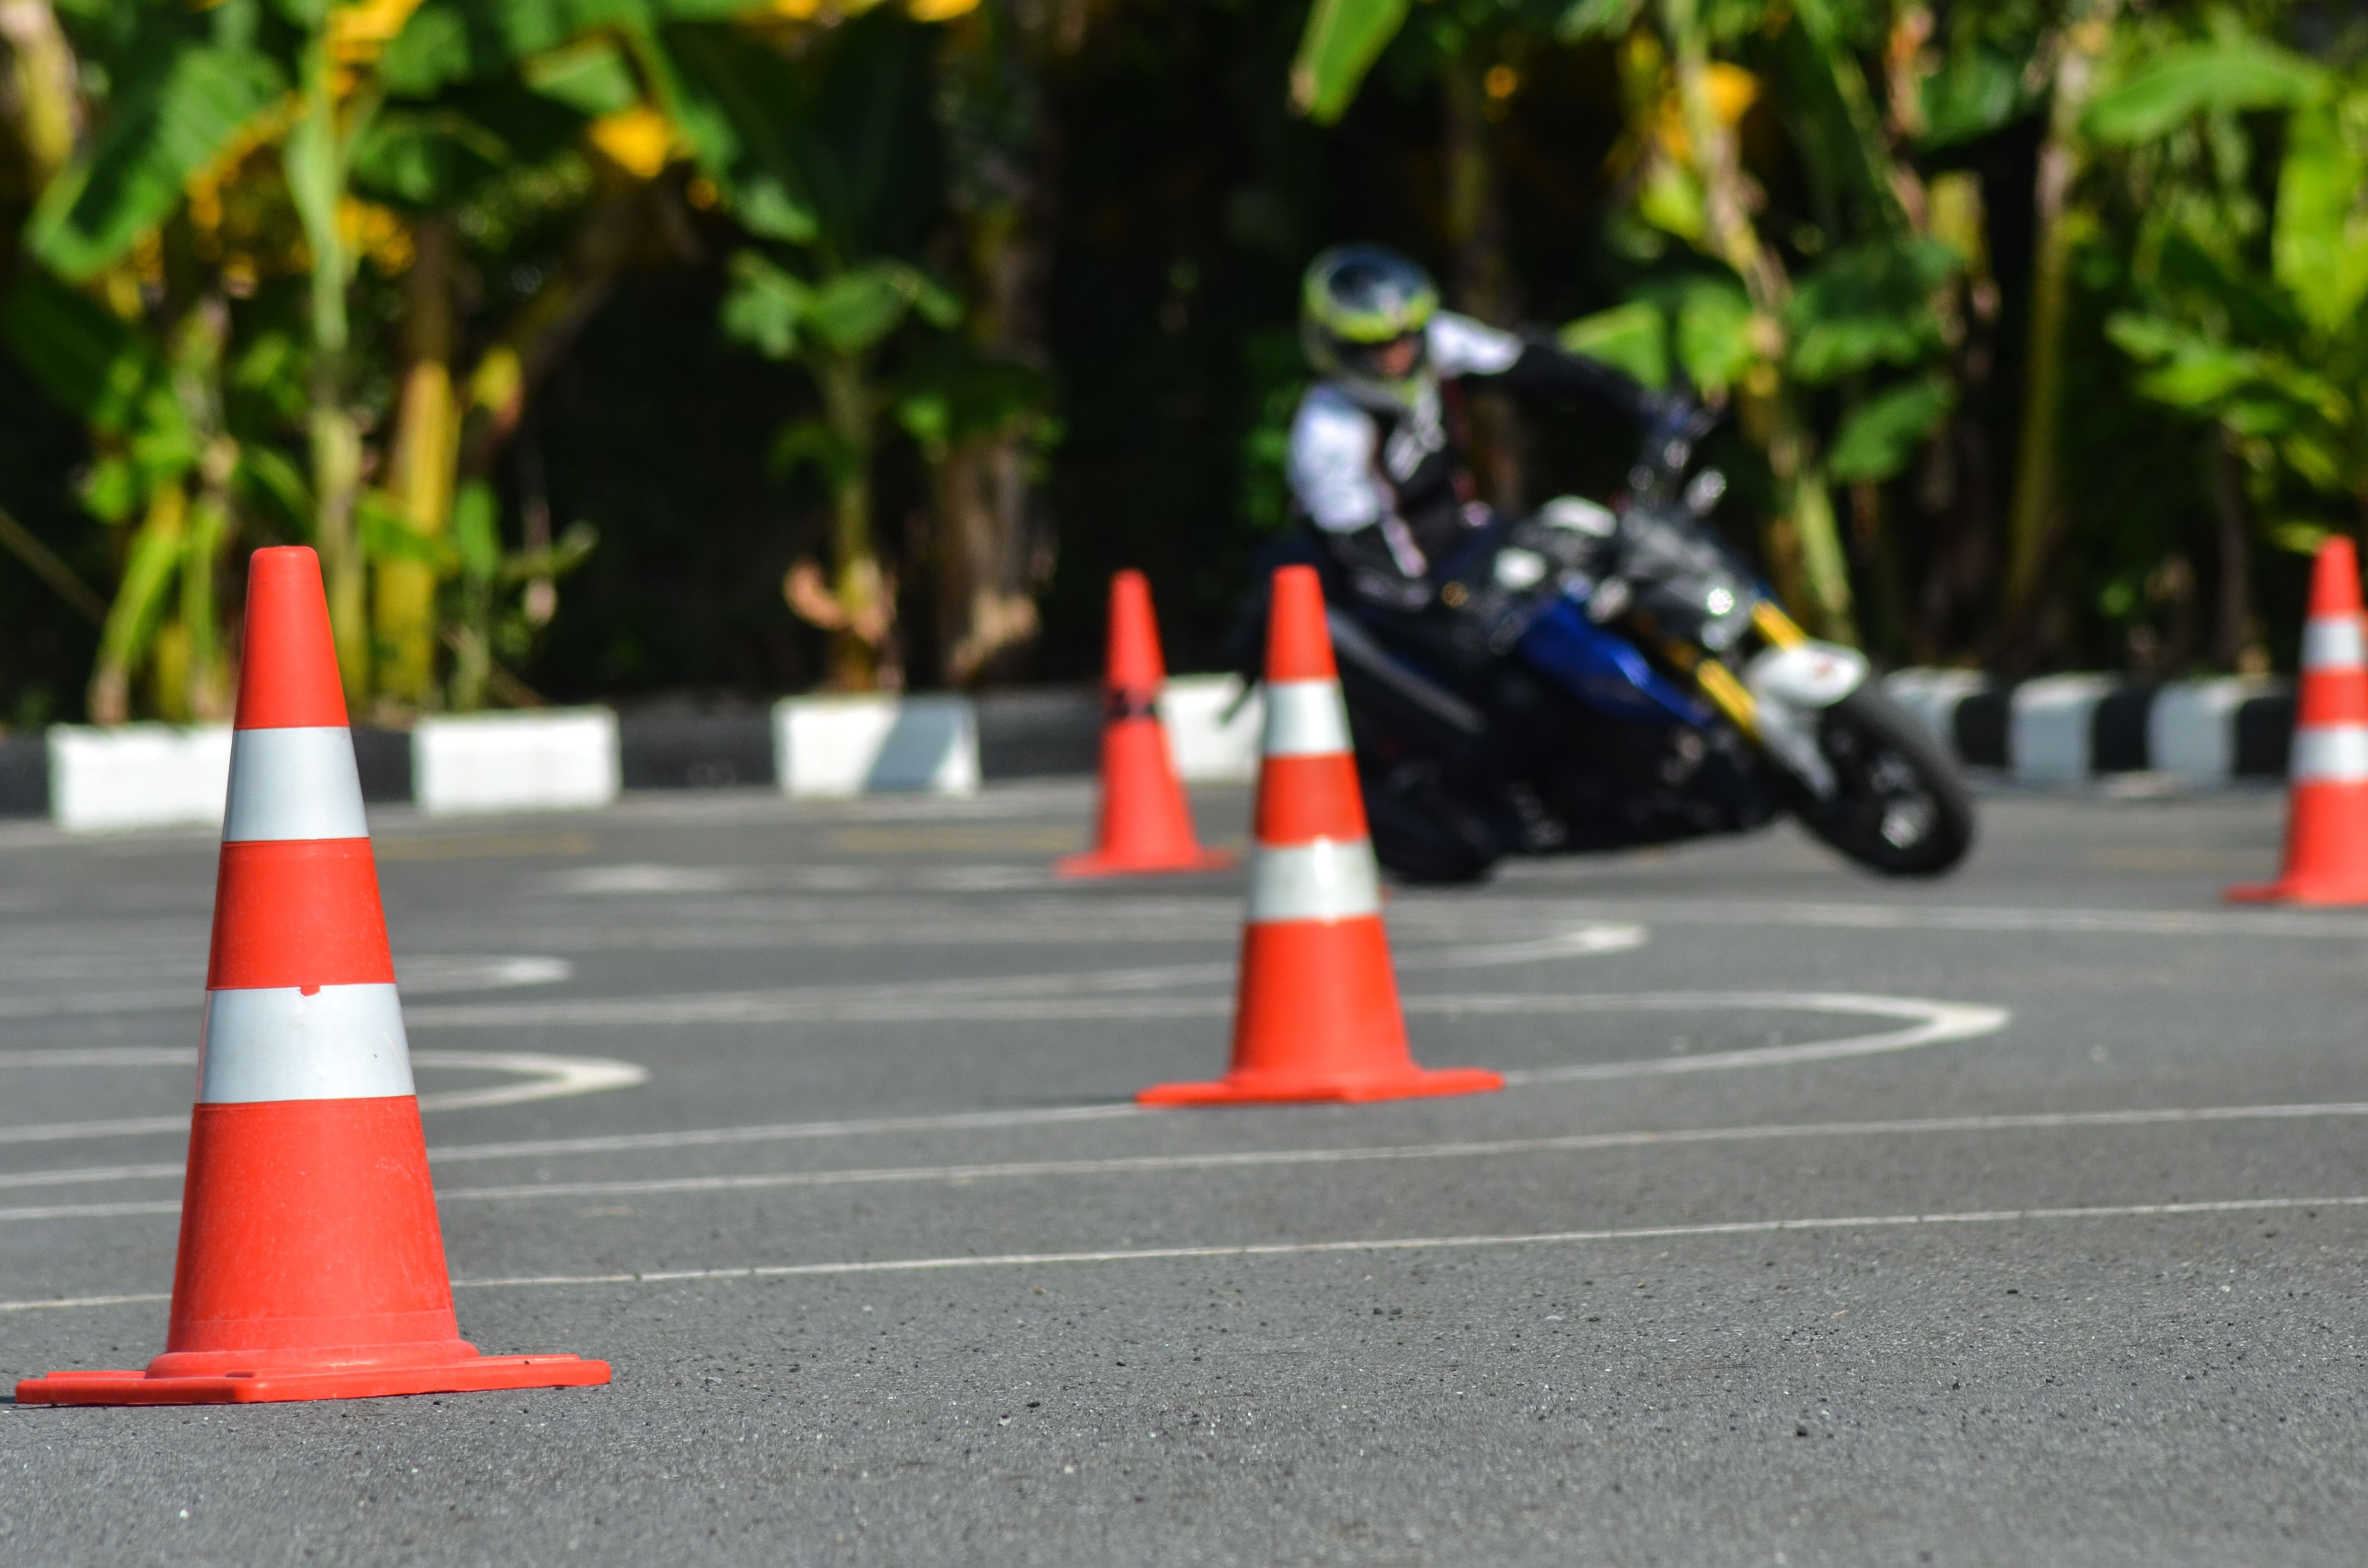 Motorcyclist on course